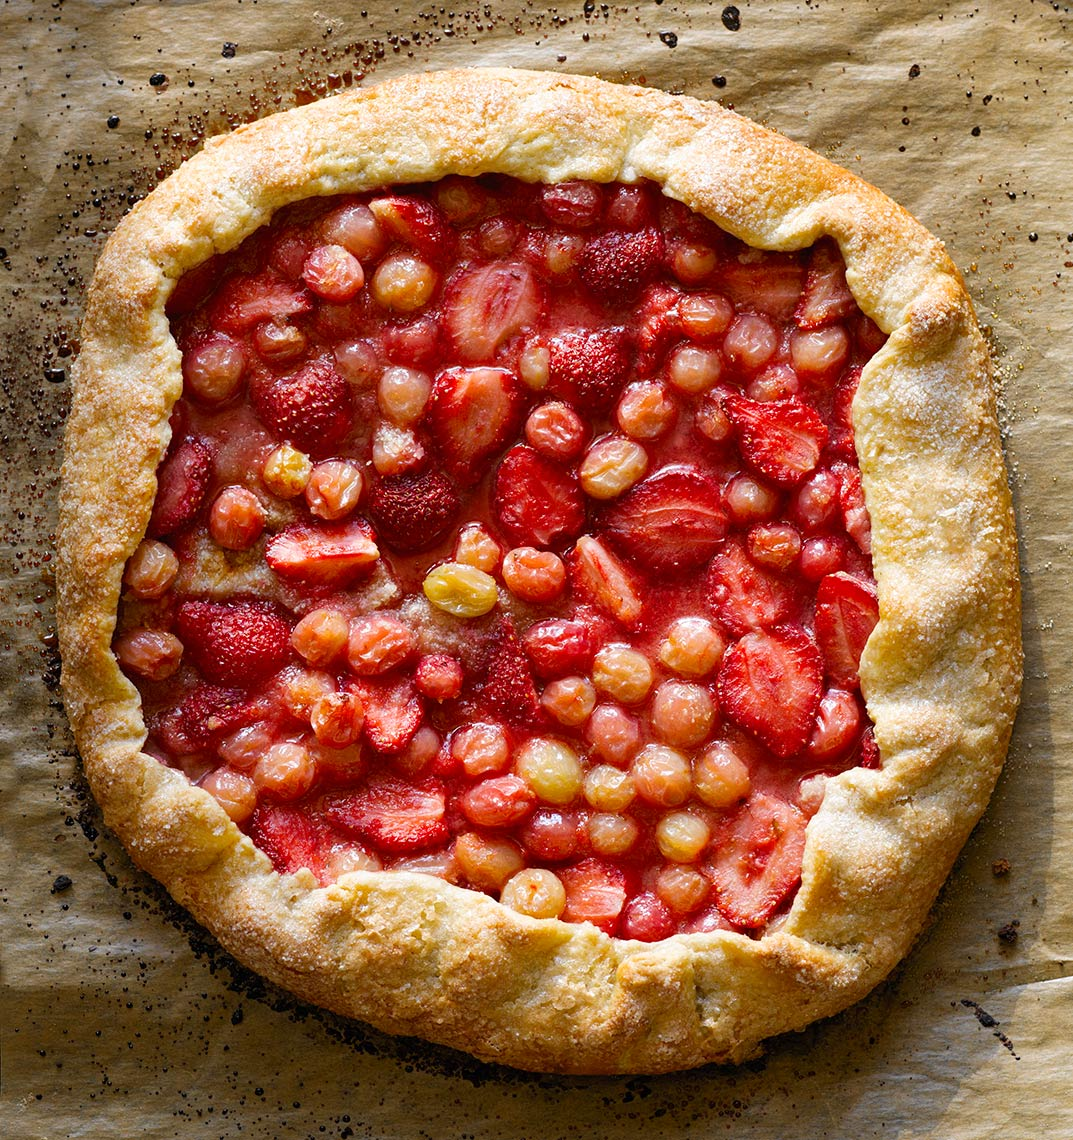 gooseberry strawberry tart | Colin Campbell - Food Photographer